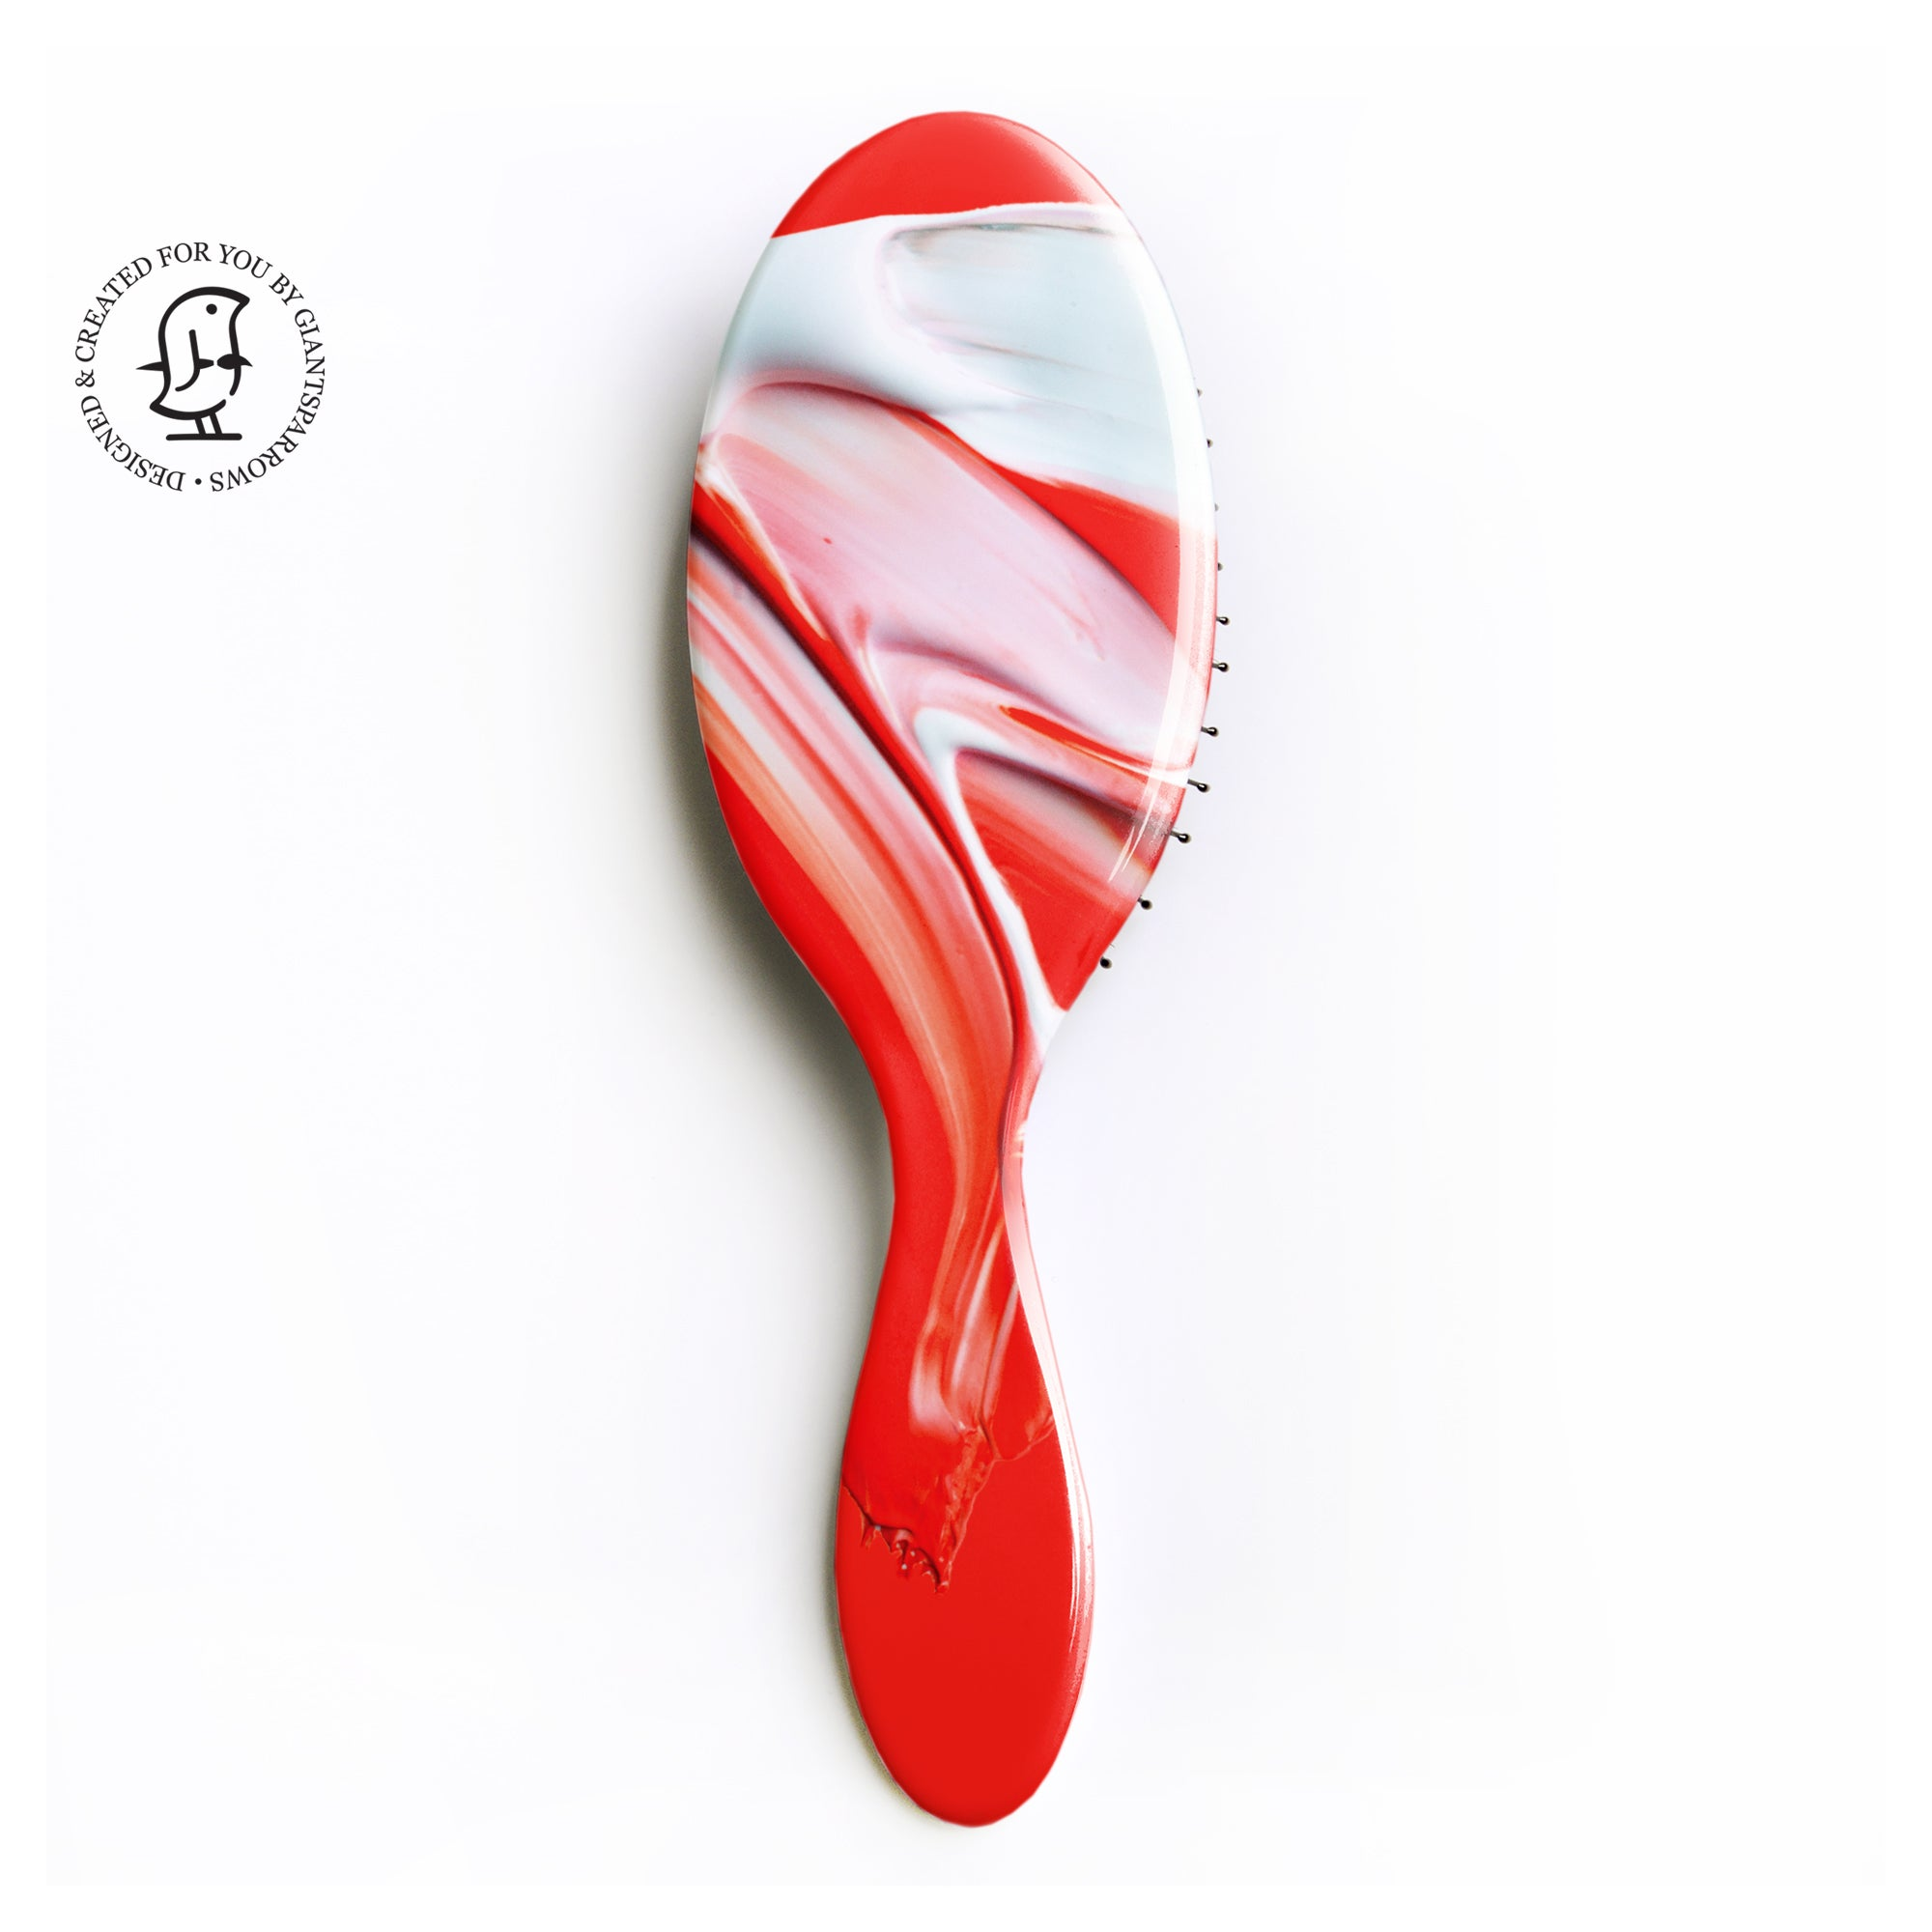 Personalised Hair Brush - Bold Red Paint Swirl Design